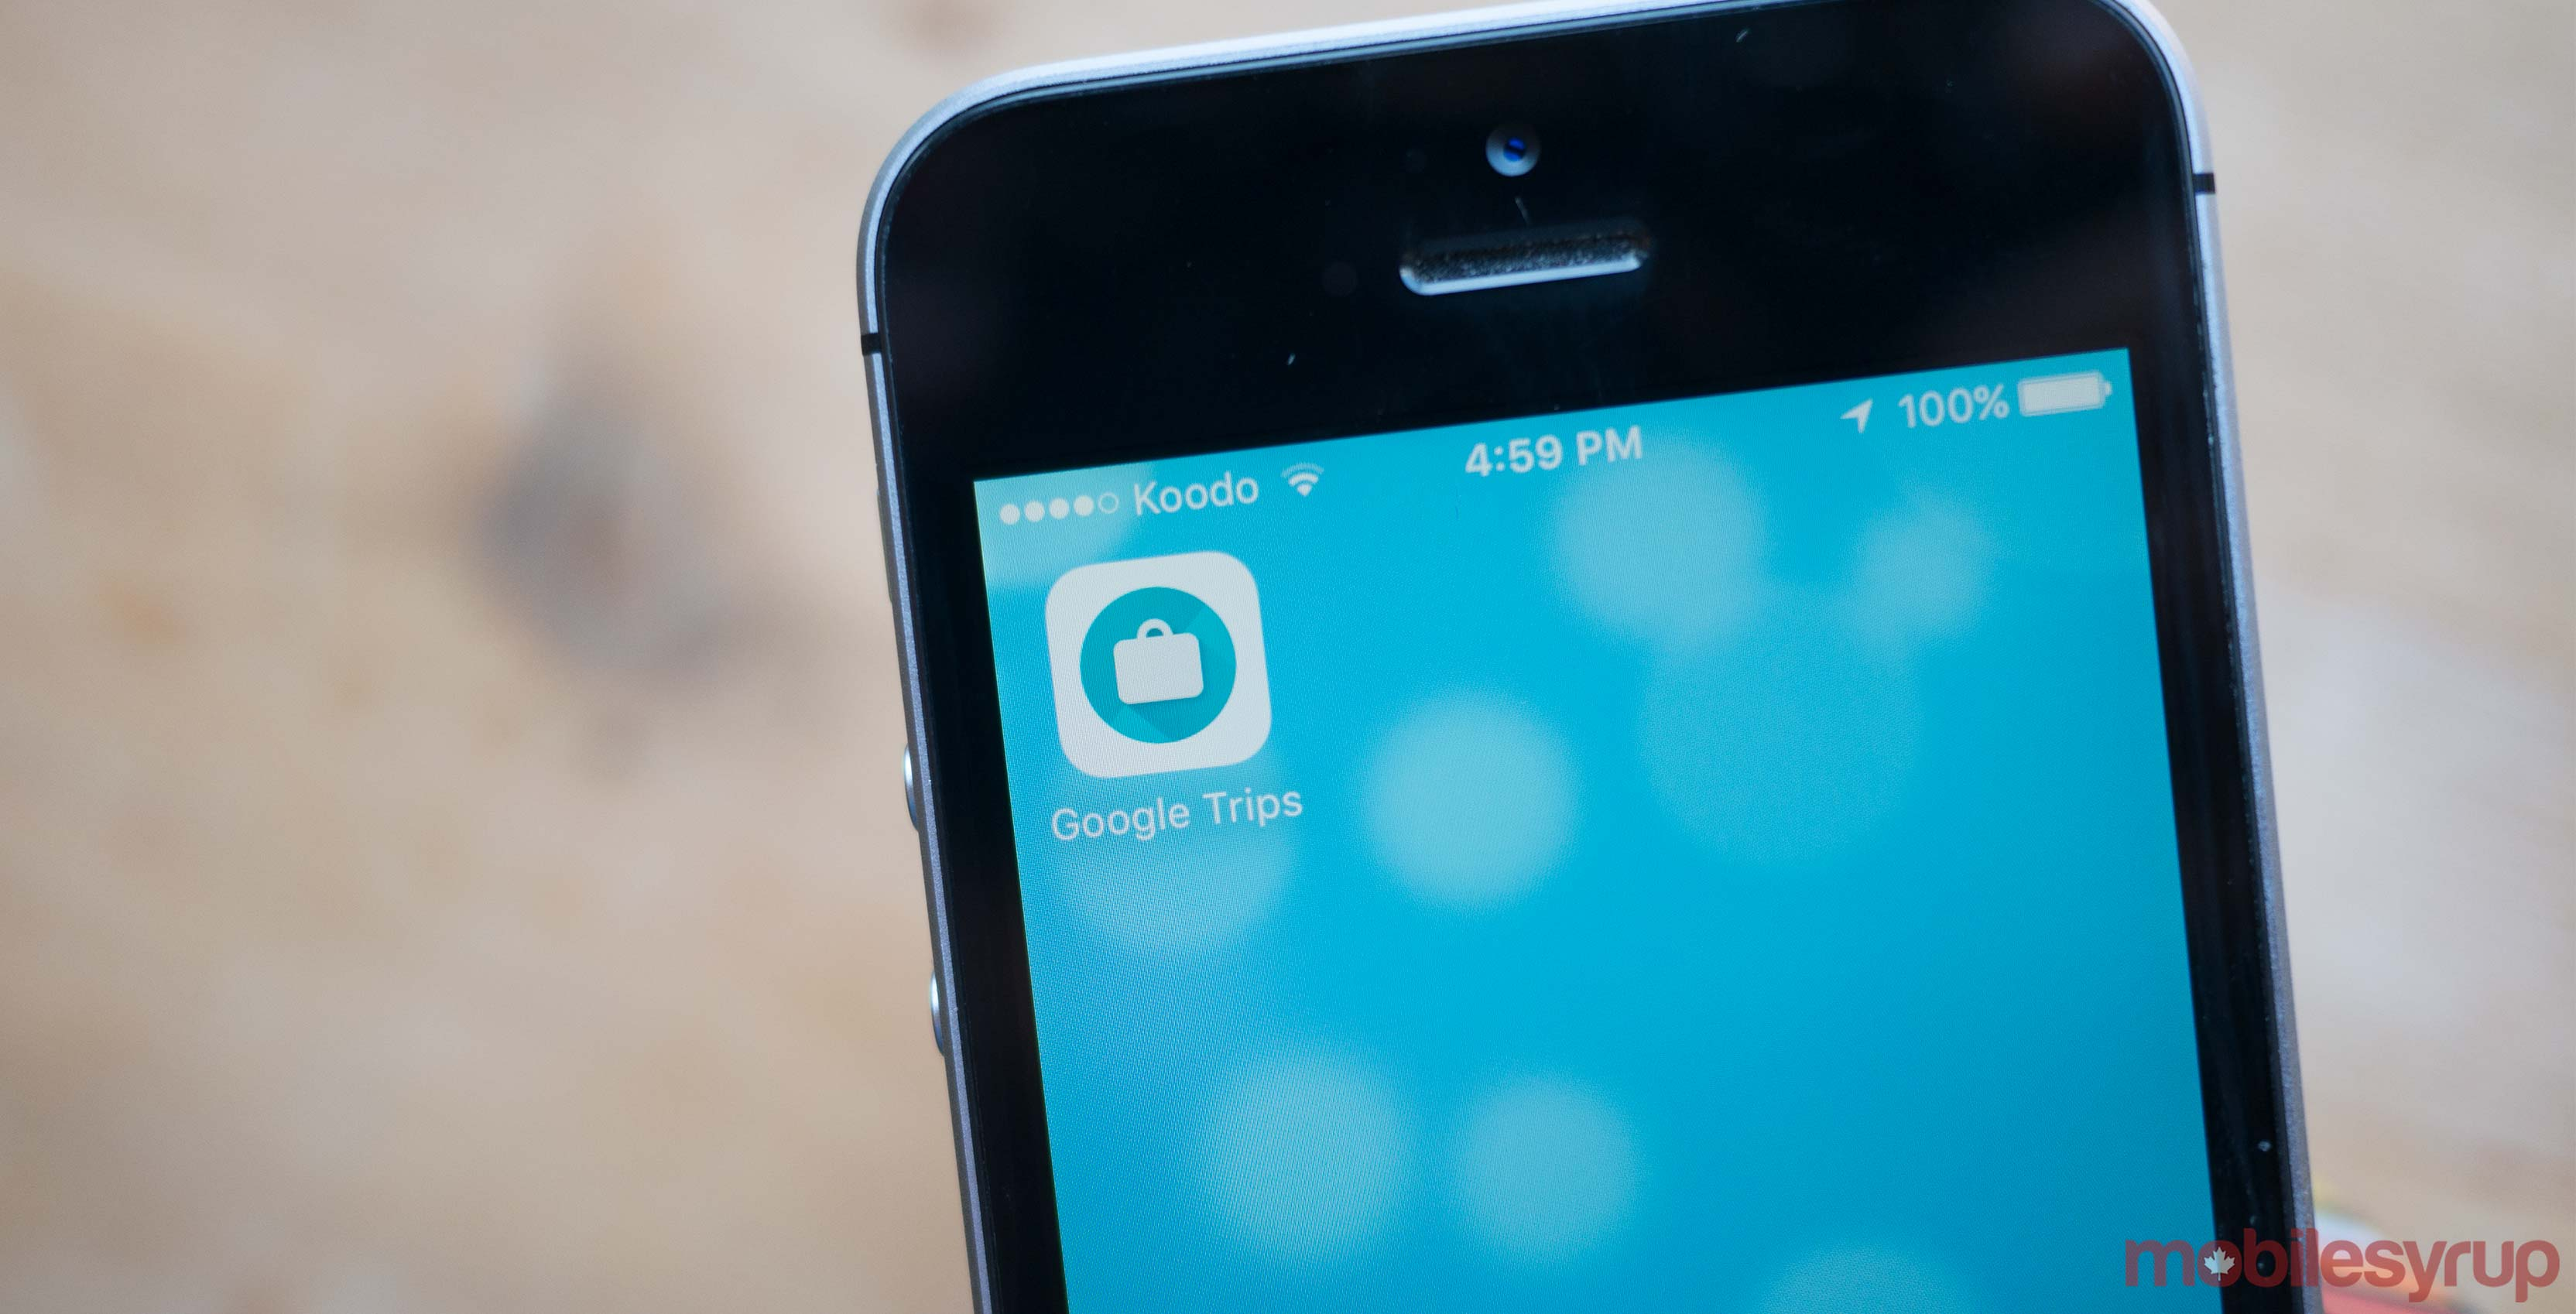 Google is shutting down its Trips mobile app on August 5, 2019